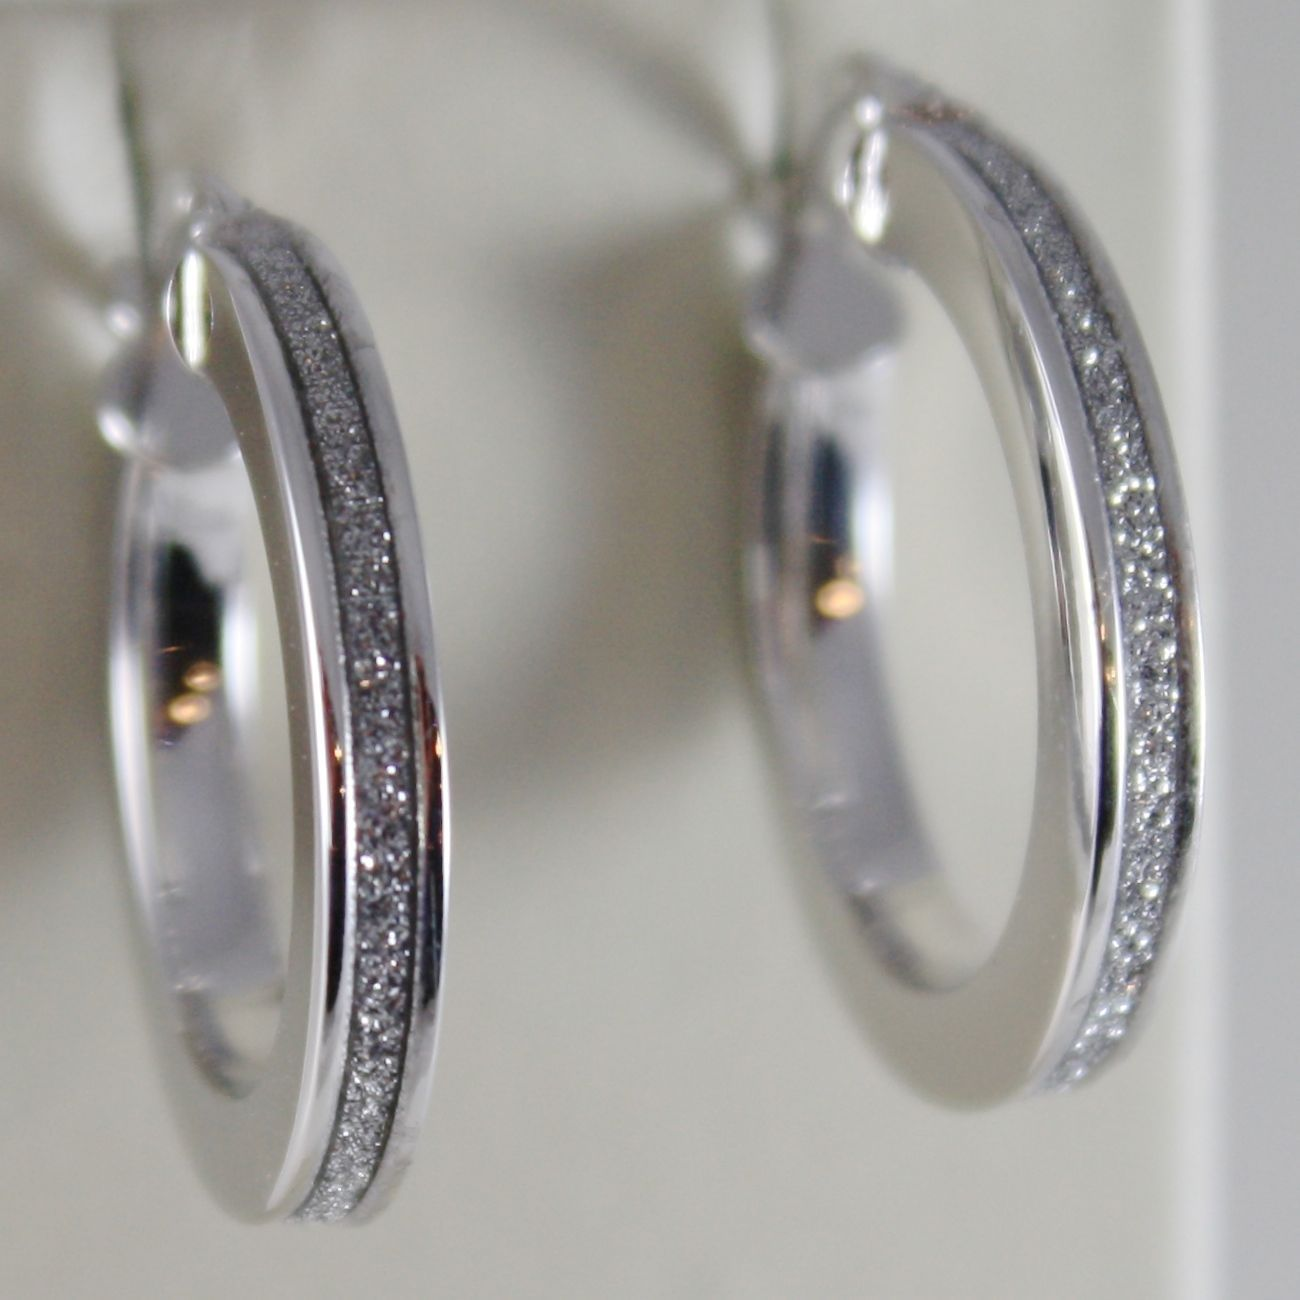 18K WHITE GOLD CIRCLE HOOP EARRINGS 21 MM, GLAM LUMINOUS BRIGHT, MADE IN ITALY